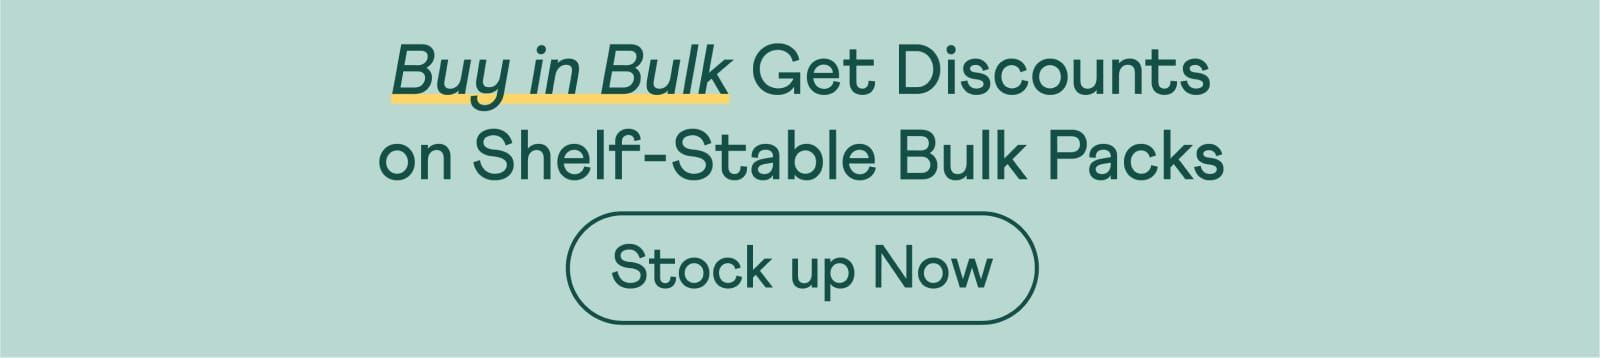 Buy in Bulk. Get Discount on Shelf-Stable Bulk Packs.